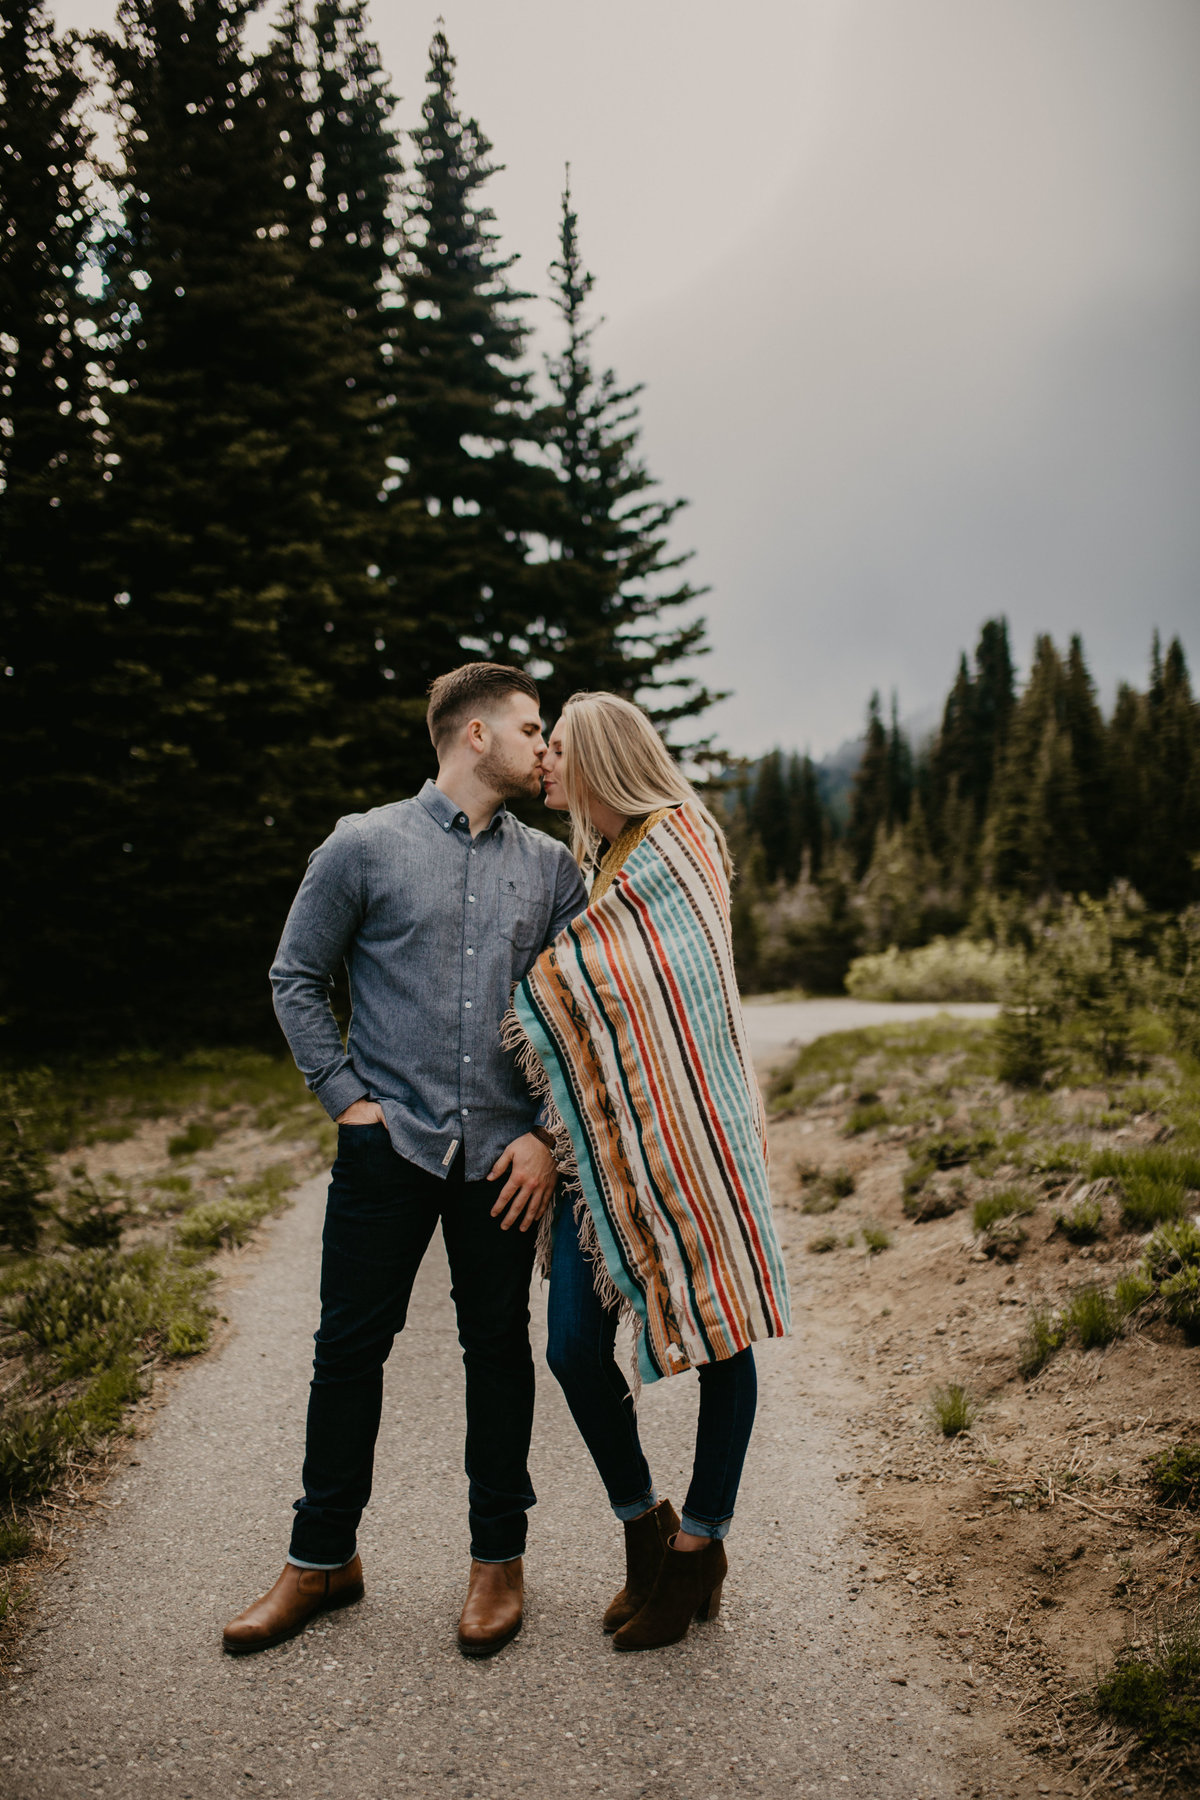 Marnie_Cornell_Photography_Engagement_Mount_Rainier_RK-73